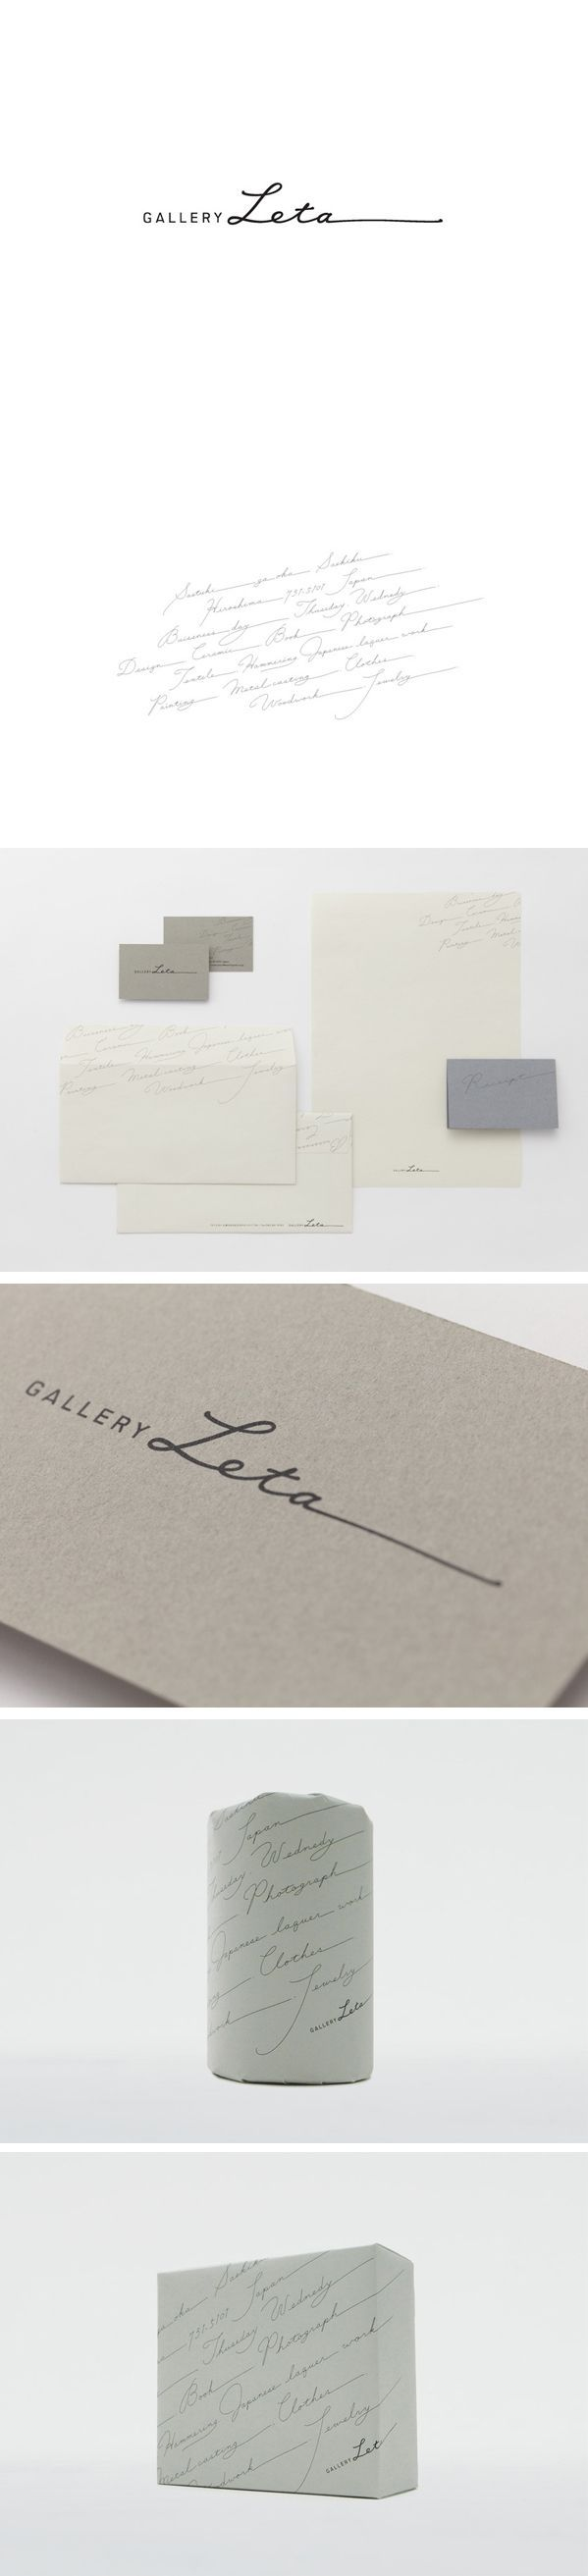 GALLERY LETA - Daikoku Design Institute / design / logo / branding / stationery /business card / signature and type - beautiful, elegant and classy design